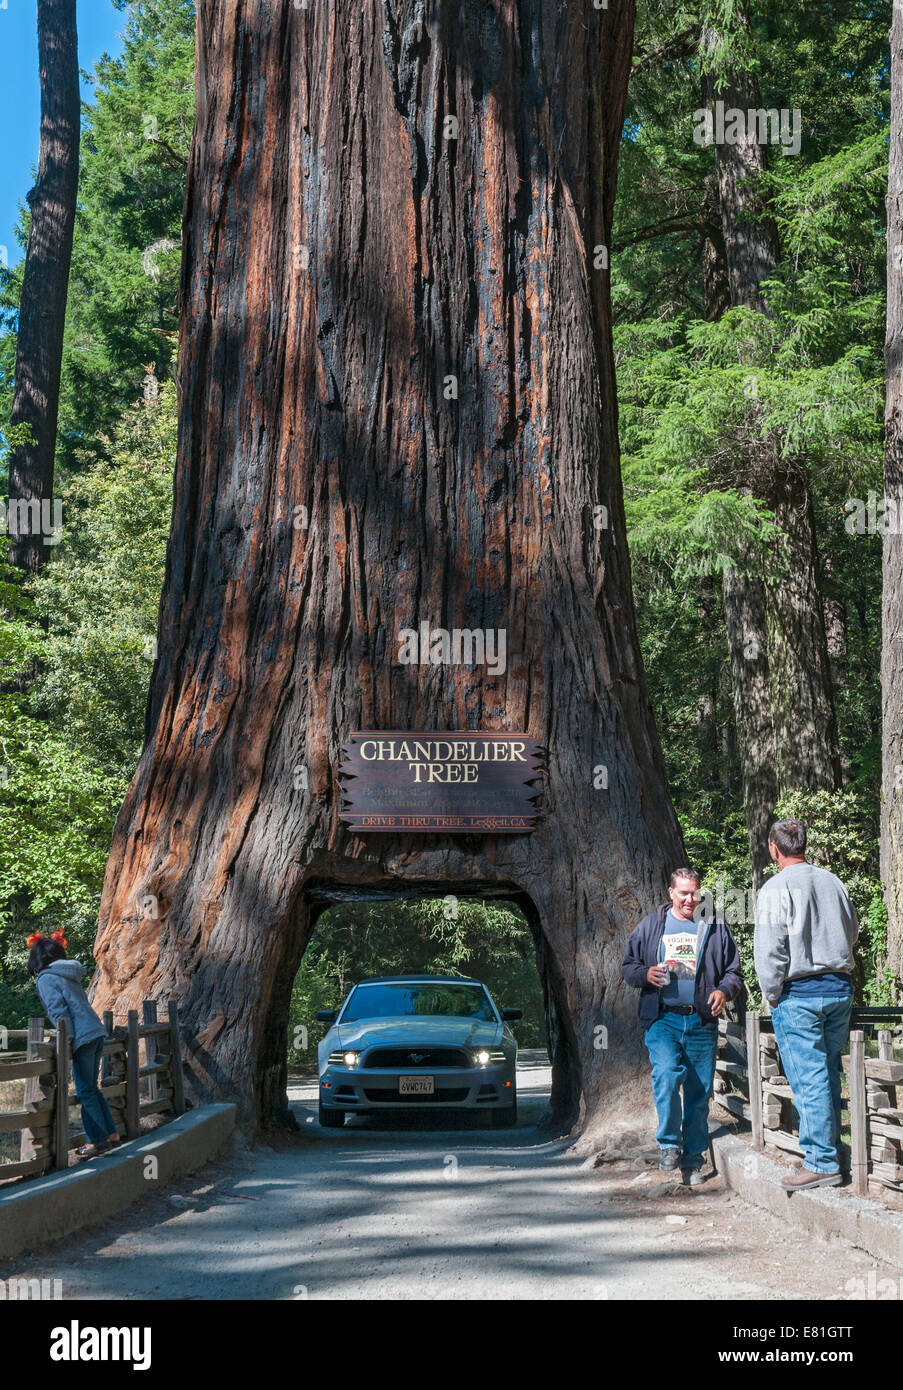 California leggett chandelier tree drive through tree giant california leggett chandelier tree drive through tree giant redwood tree 315 feet tall arubaitofo Images